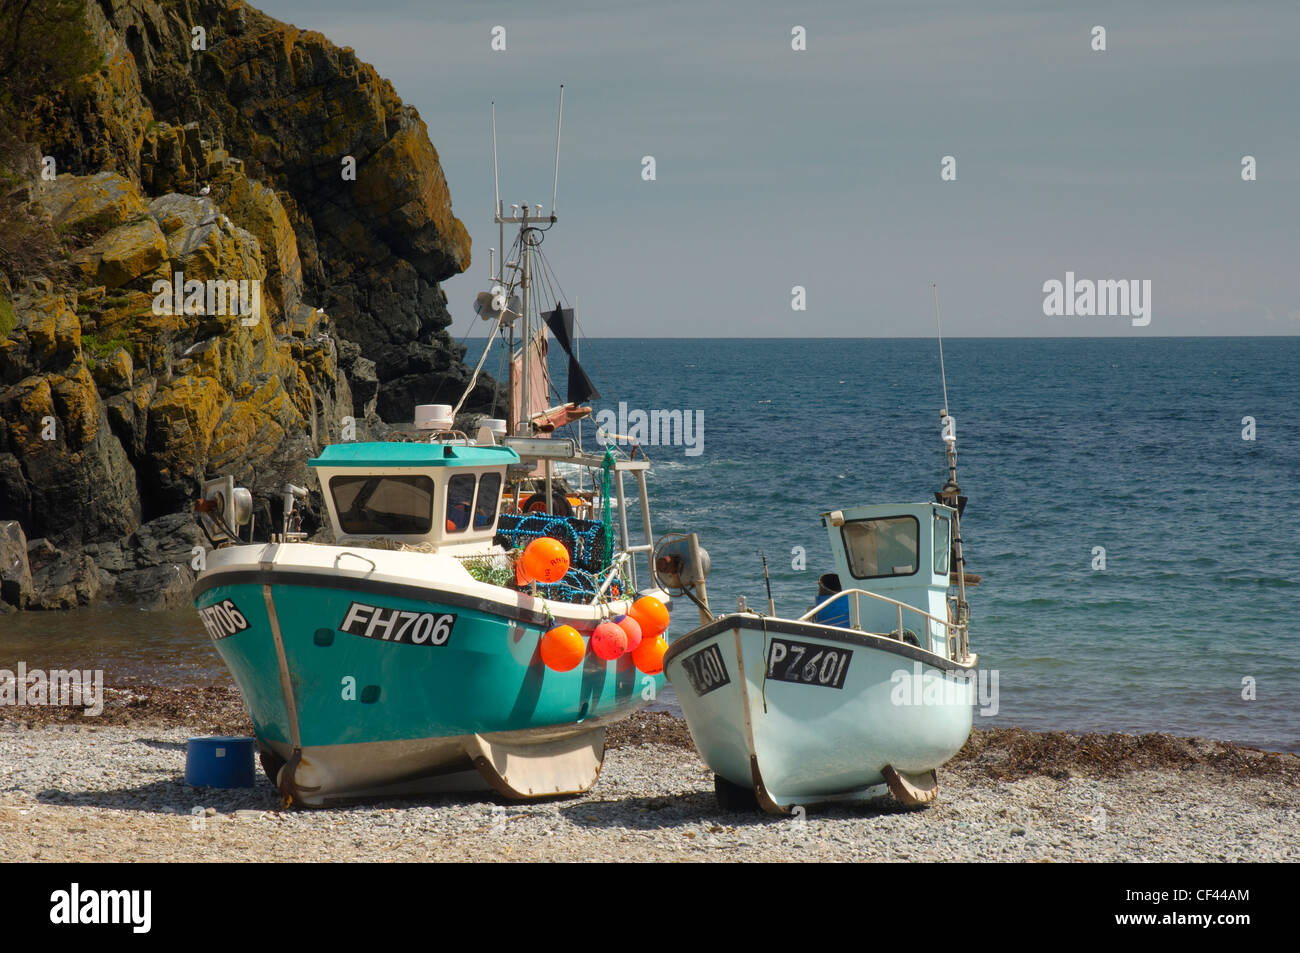 Fishing trawlers on the beach at Cadgwith Harbour. - Stock Image